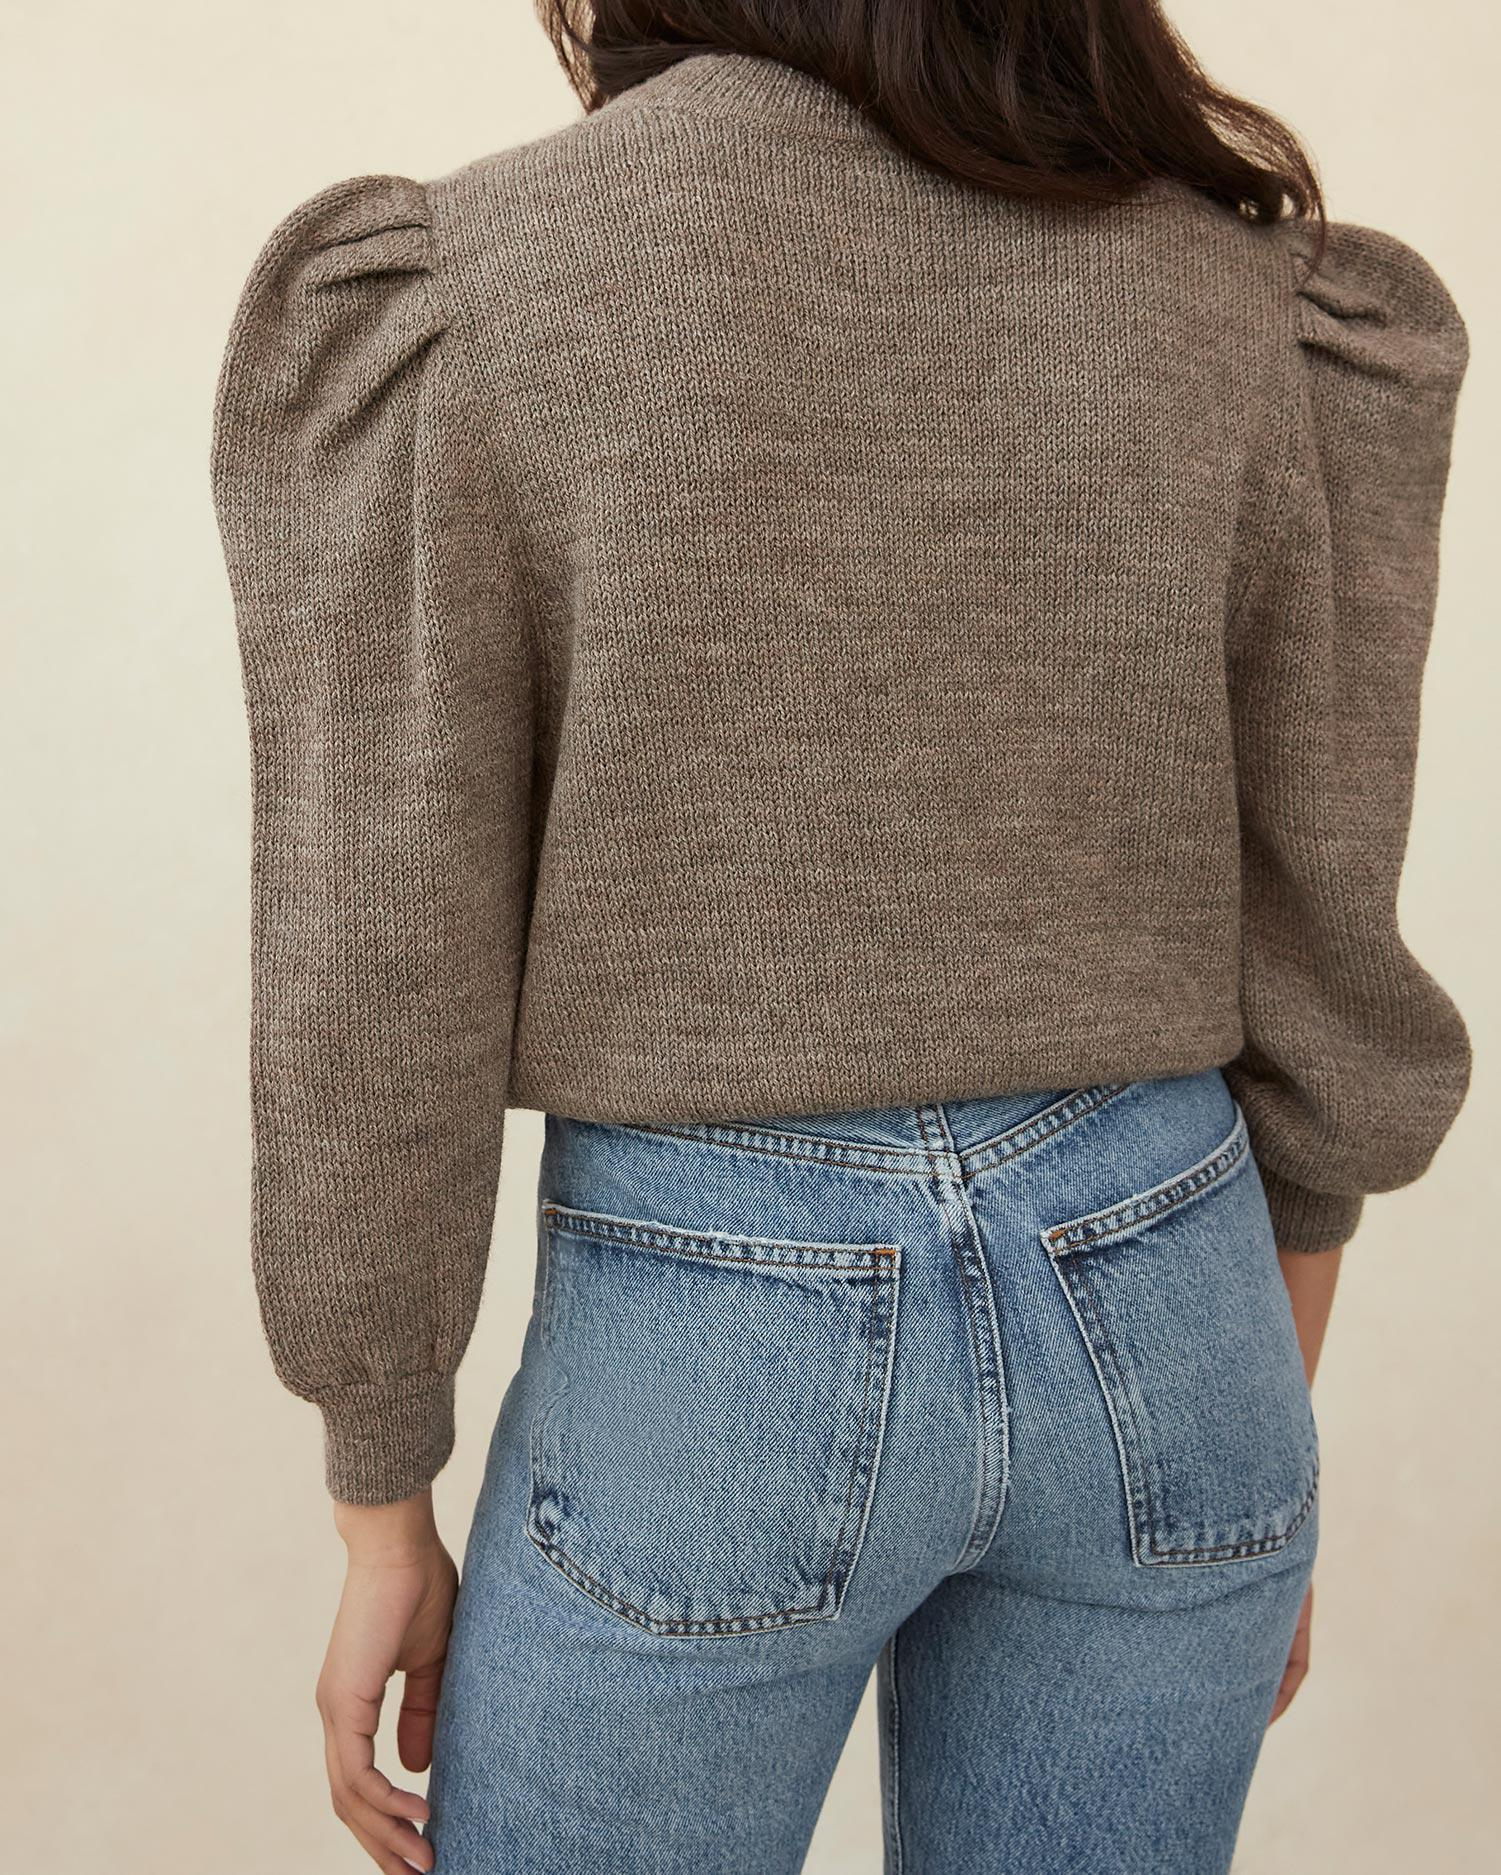 Knits for Good Heather Sweater